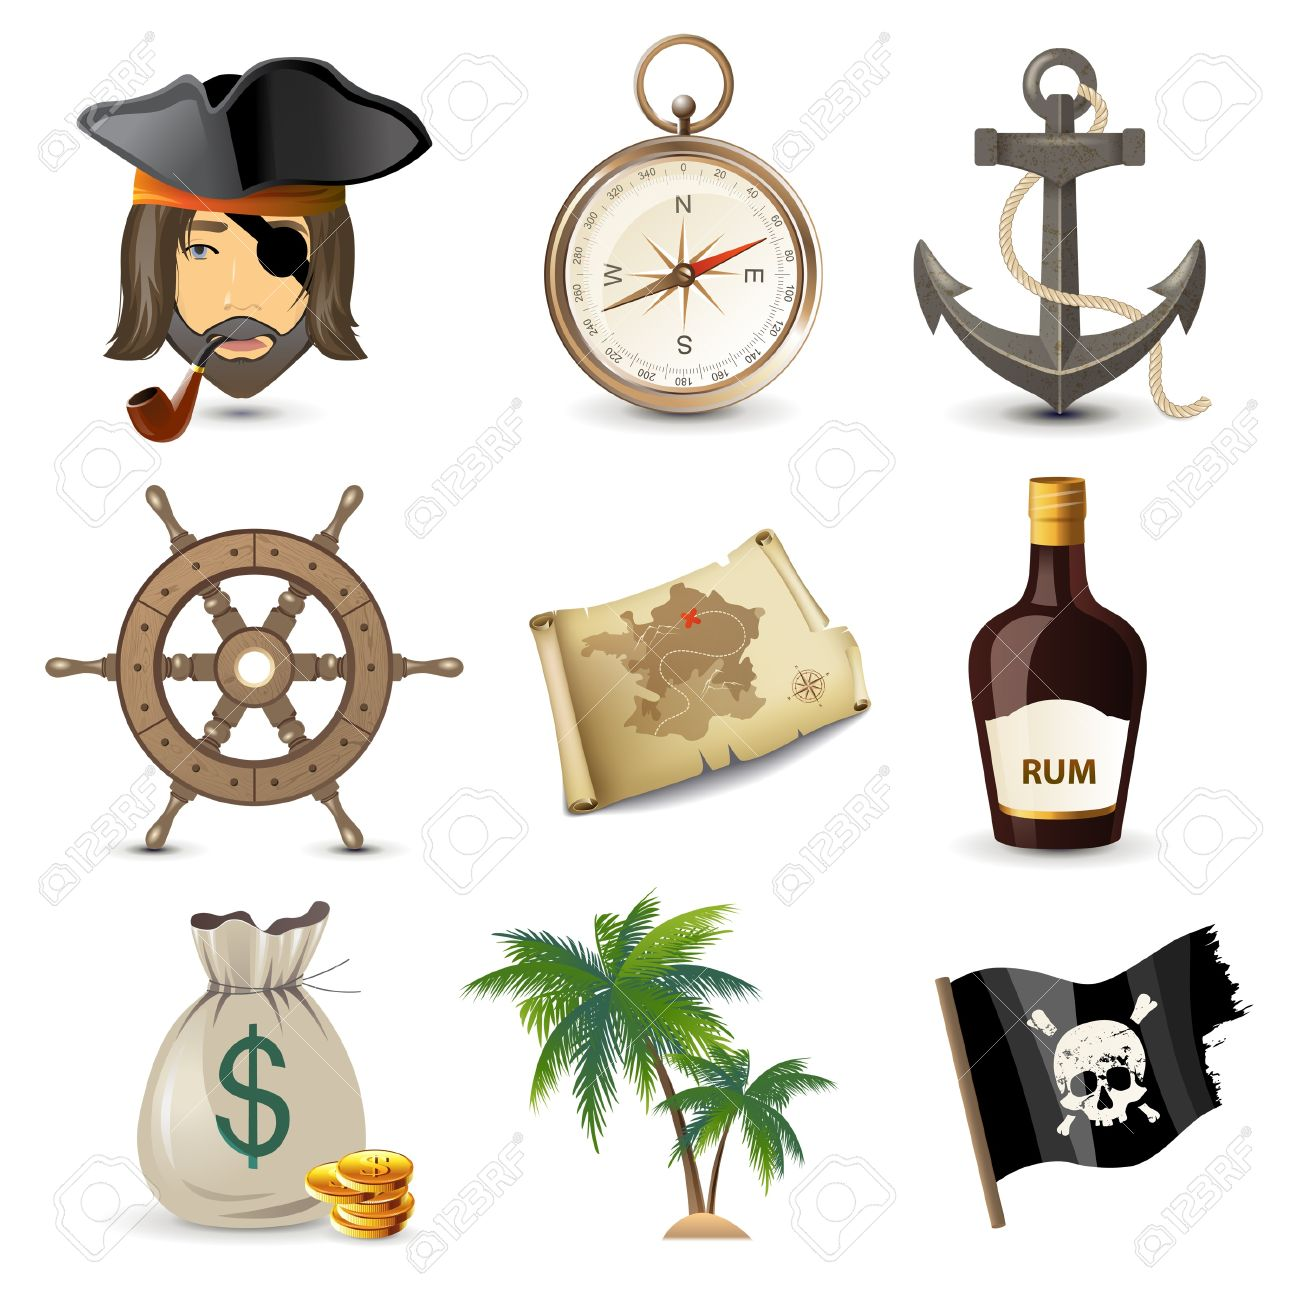 9 highly detailed pirate icons Stock Vector - 20422920